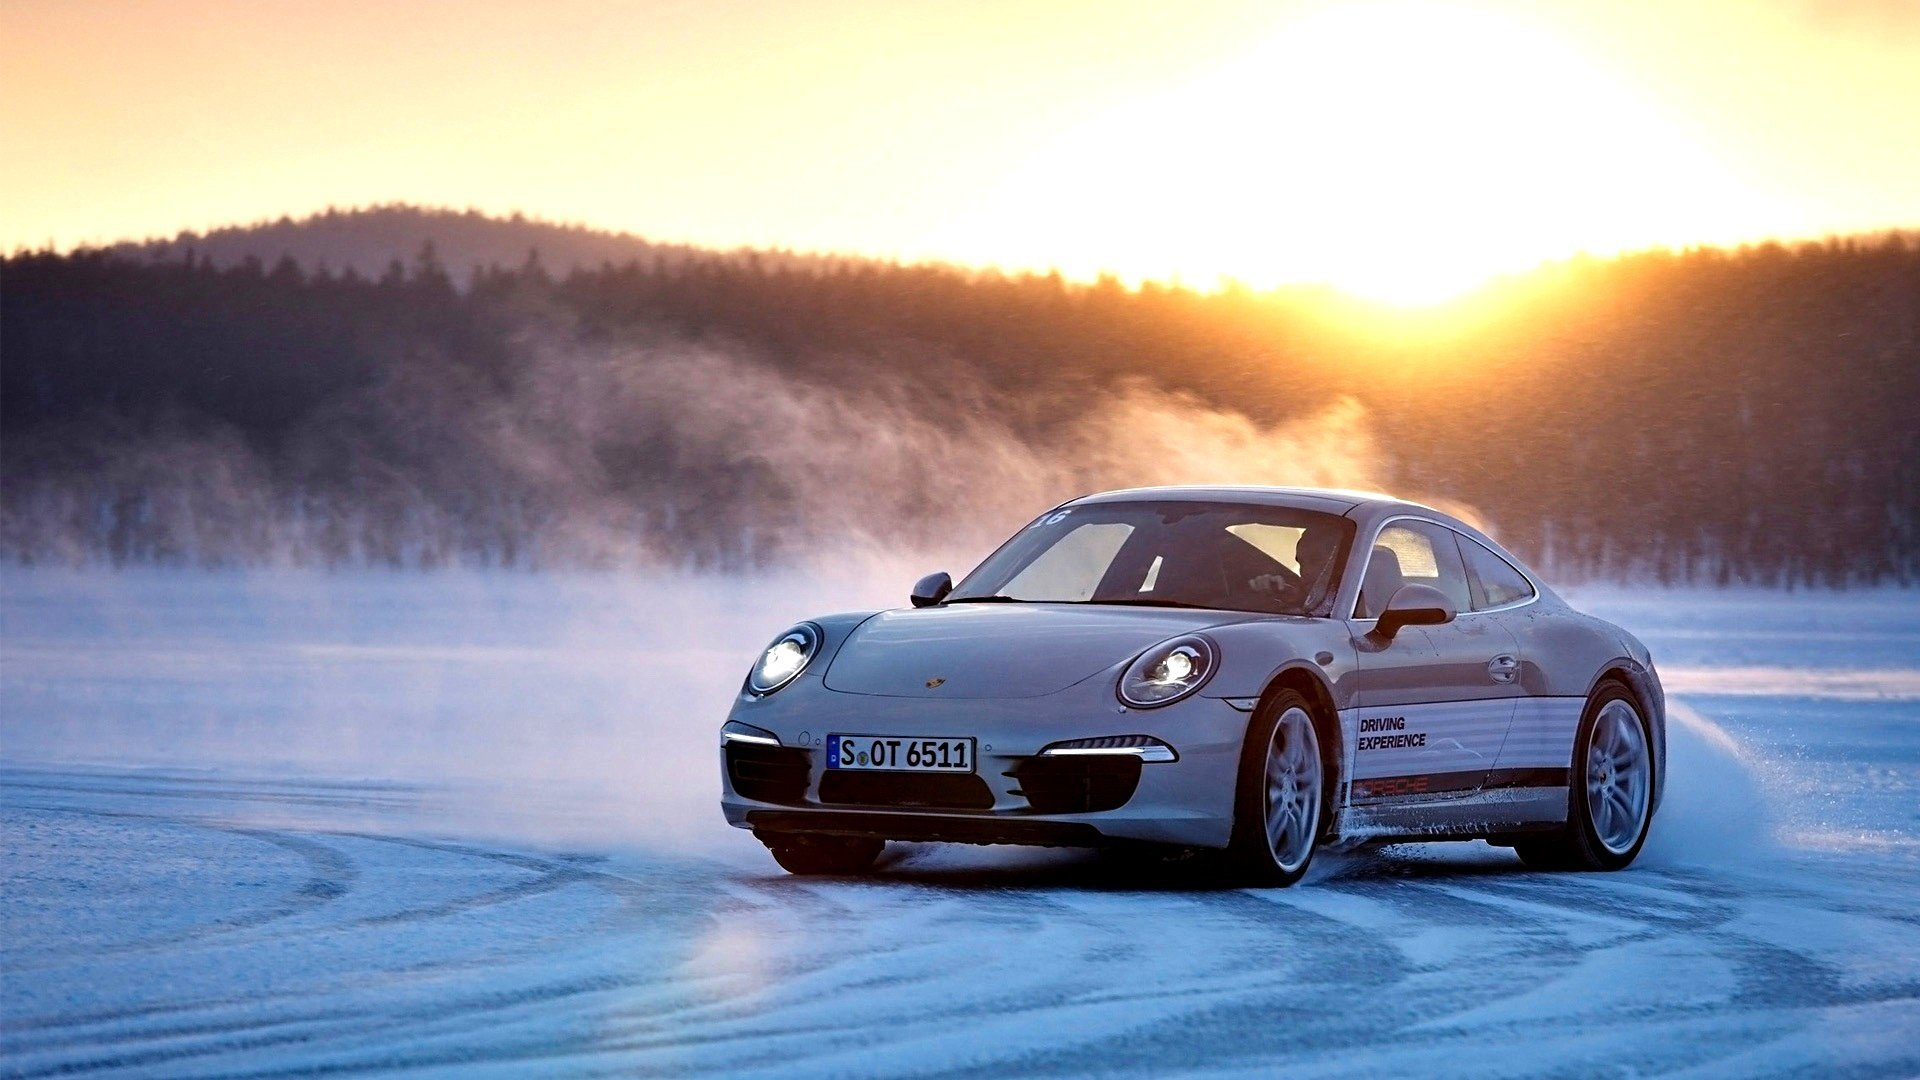 Porsche 911 Turbo Wallpapers and Background Images   stmednet 1920x1080